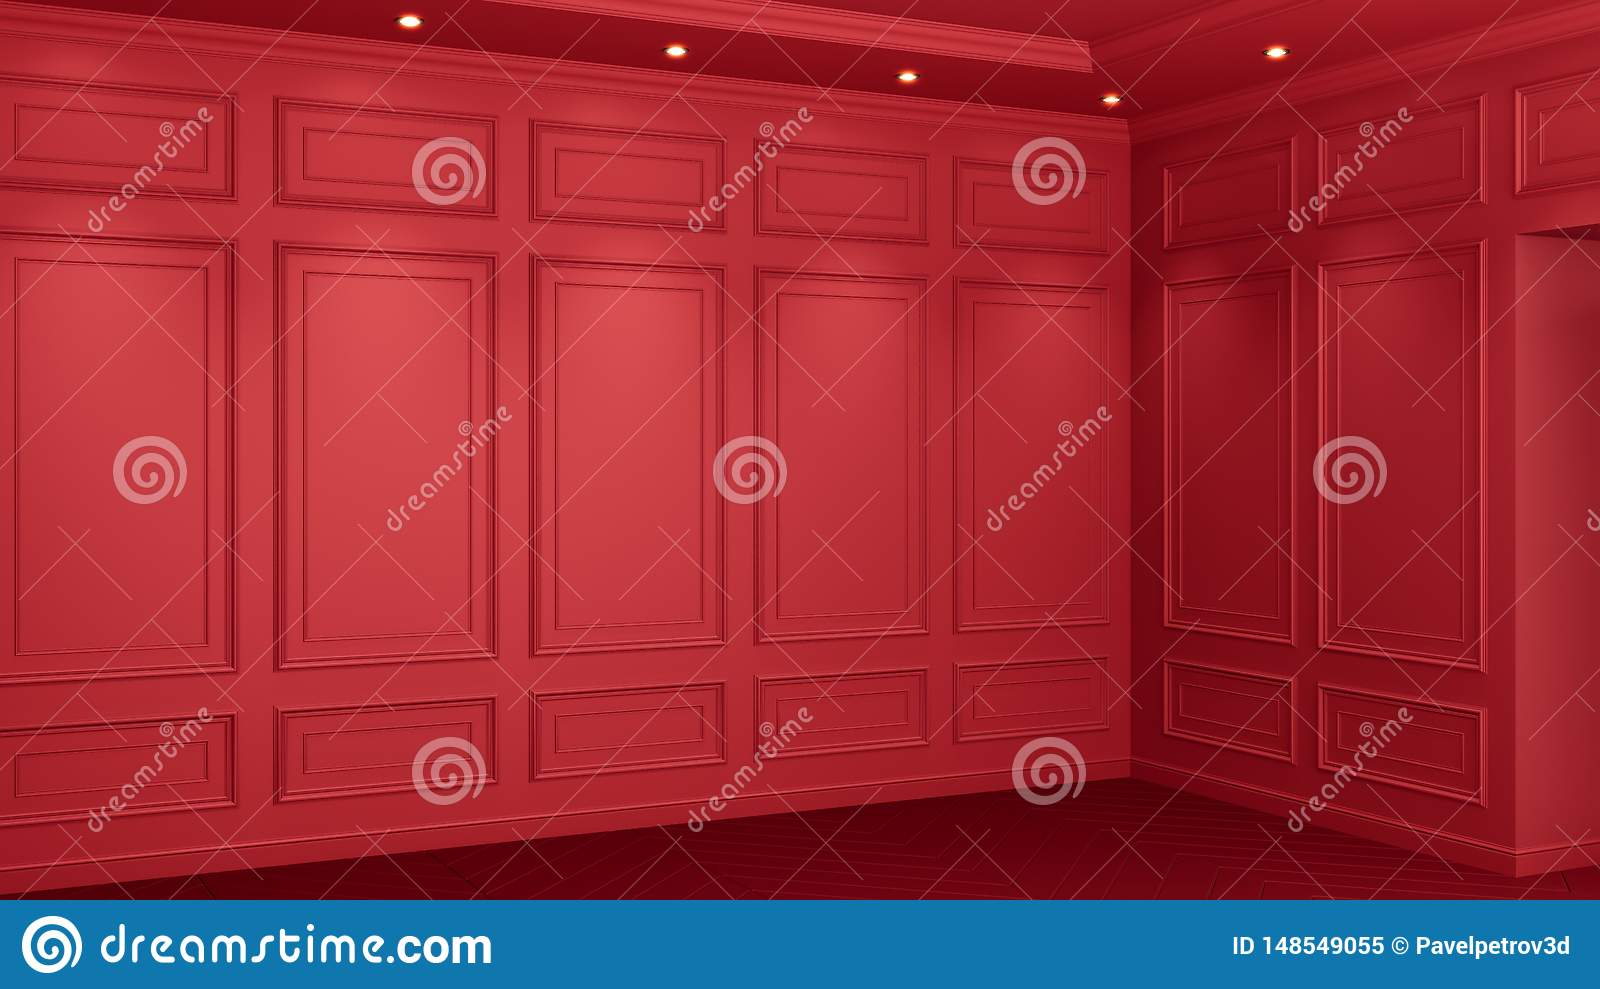 Classic red interior with copy space. Red walls with classical decor. Floor parquet herringbone. 3d rendering